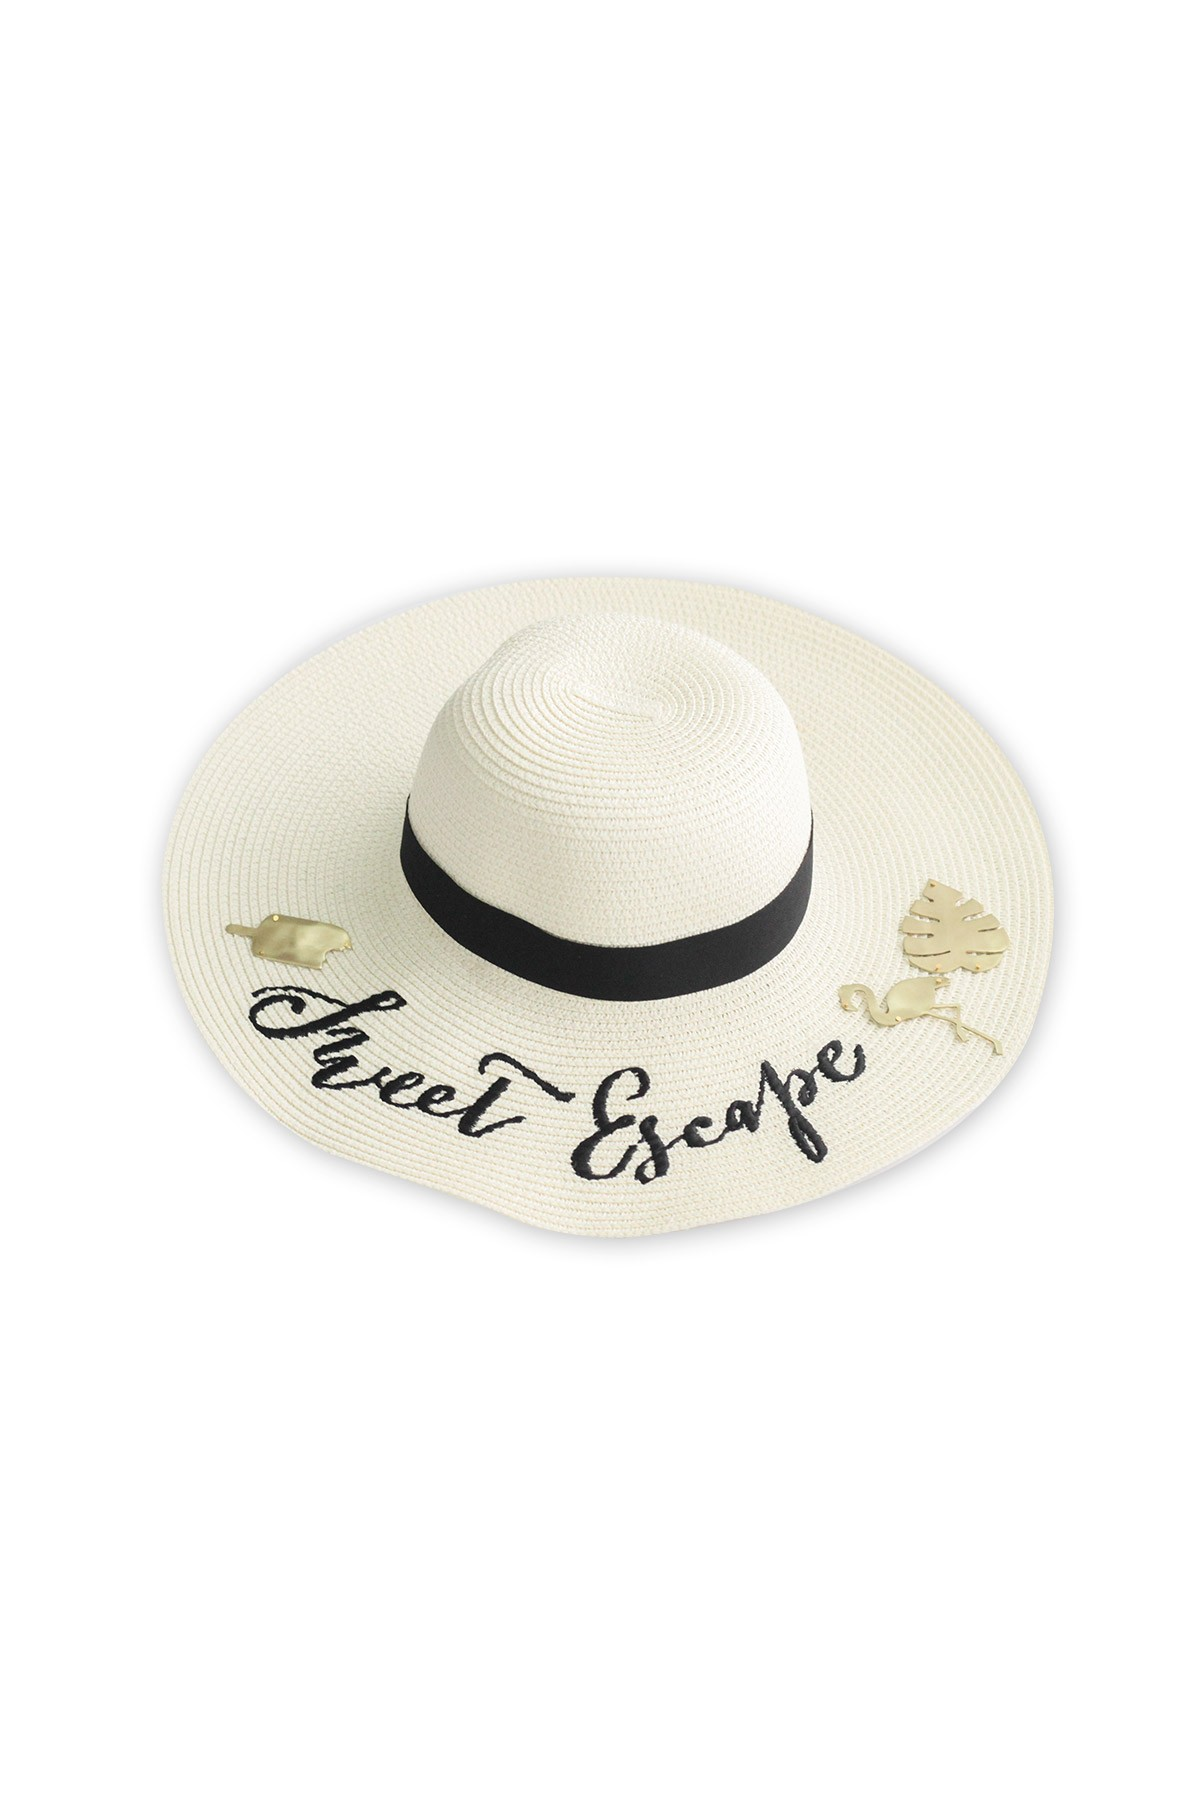 Add on: 'Sweet Escape' Embroidery